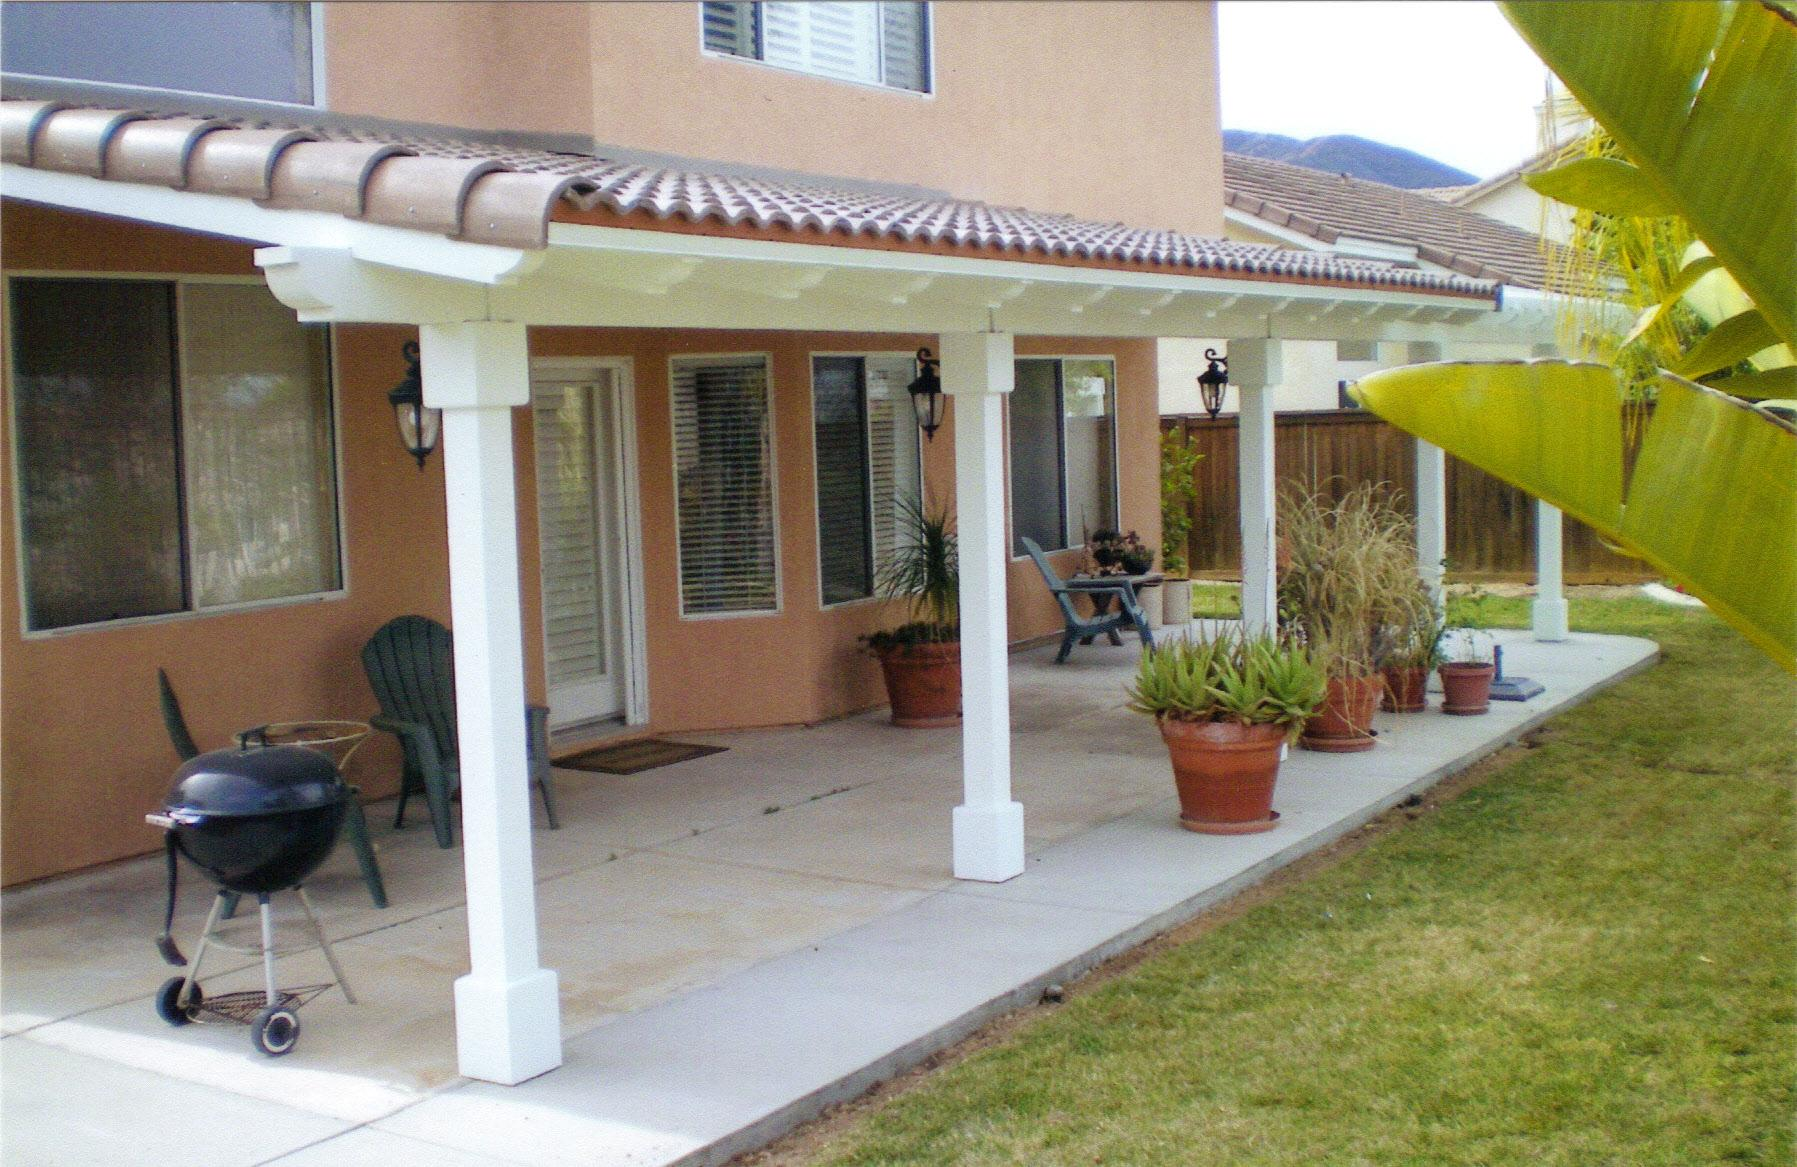 Backyard Patio Covers: From Usefulness To Style - HomesFeed on Backyard Patio Cover Ideas  id=64303